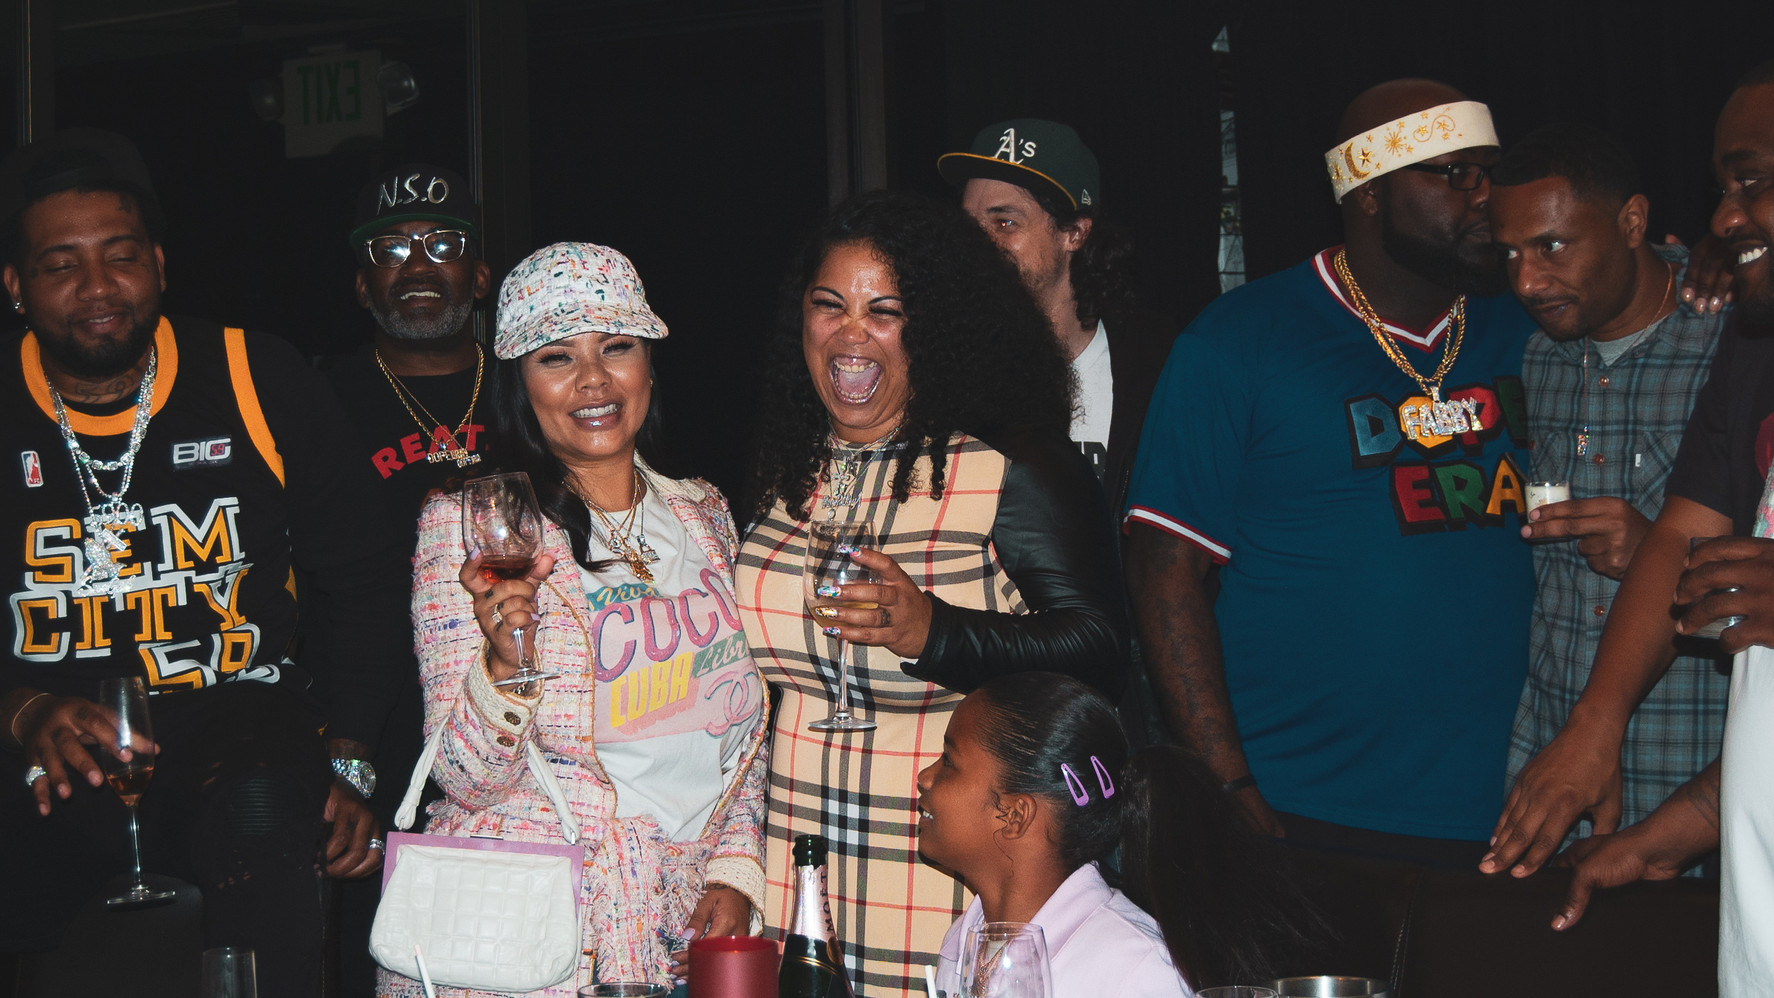 Philthy Rich's 10 yr Anniversary | Osso Steakhouse SF, CA | Photographer: BCM